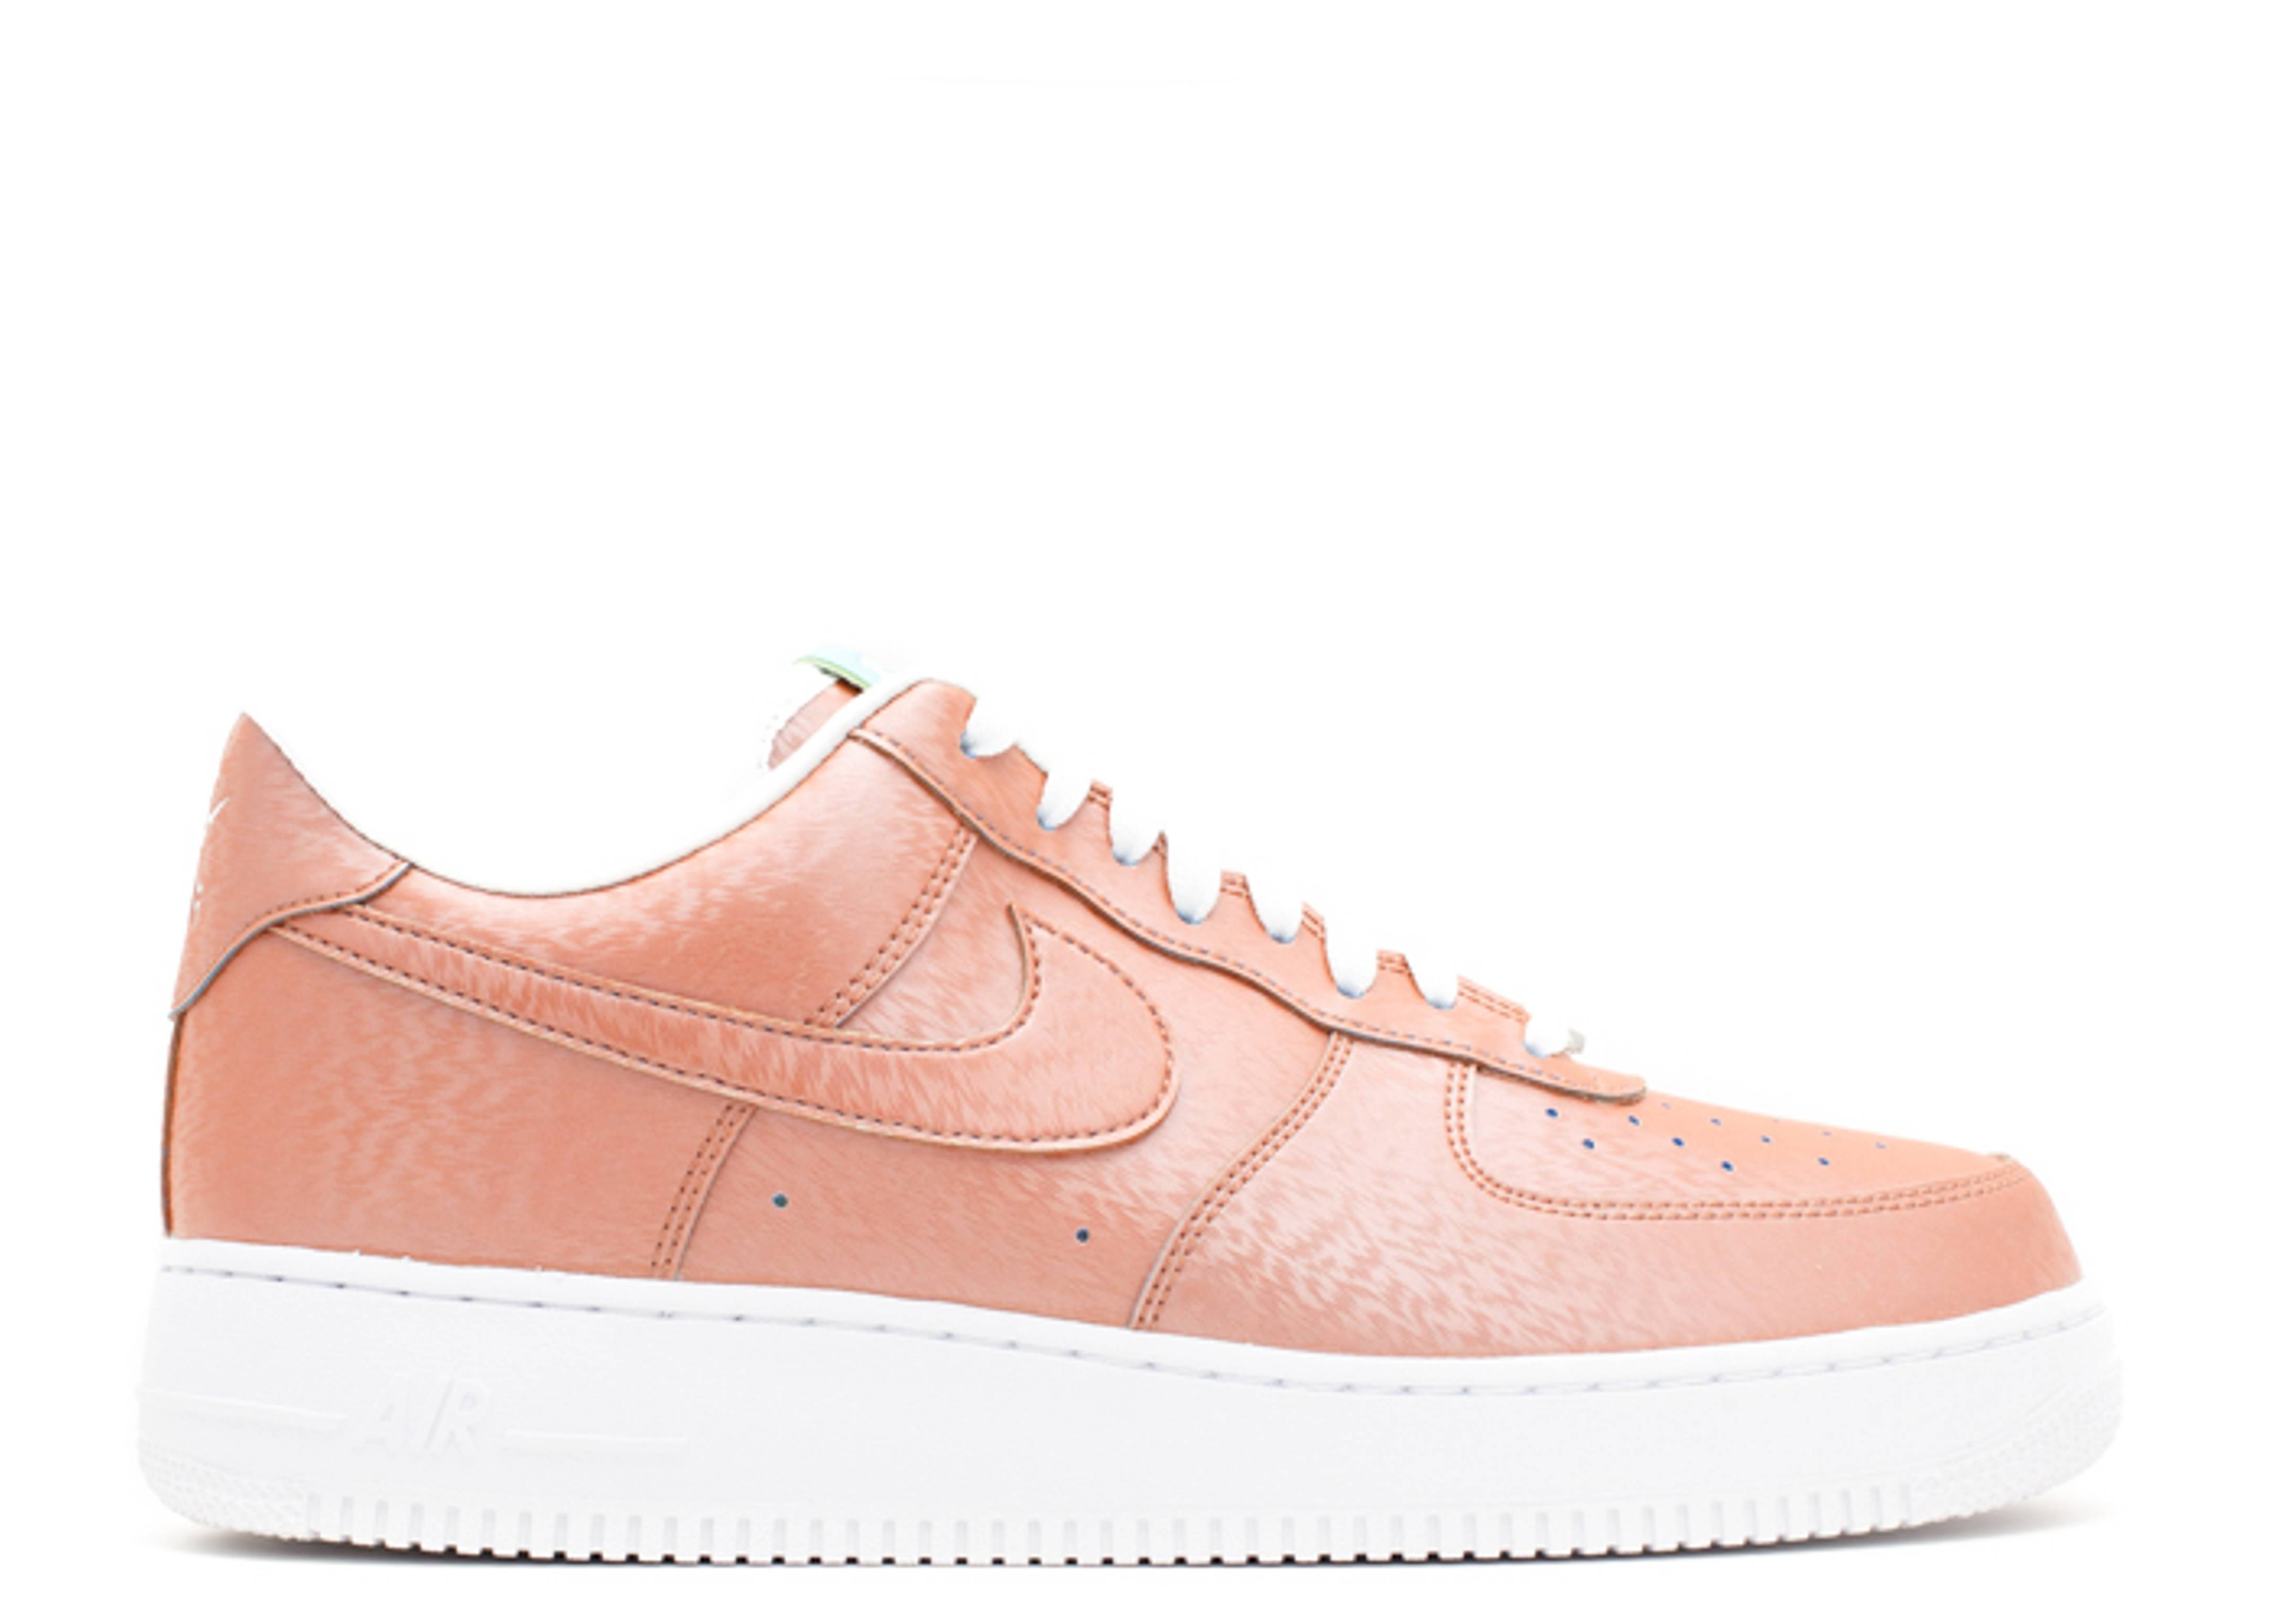 nikeair force 1